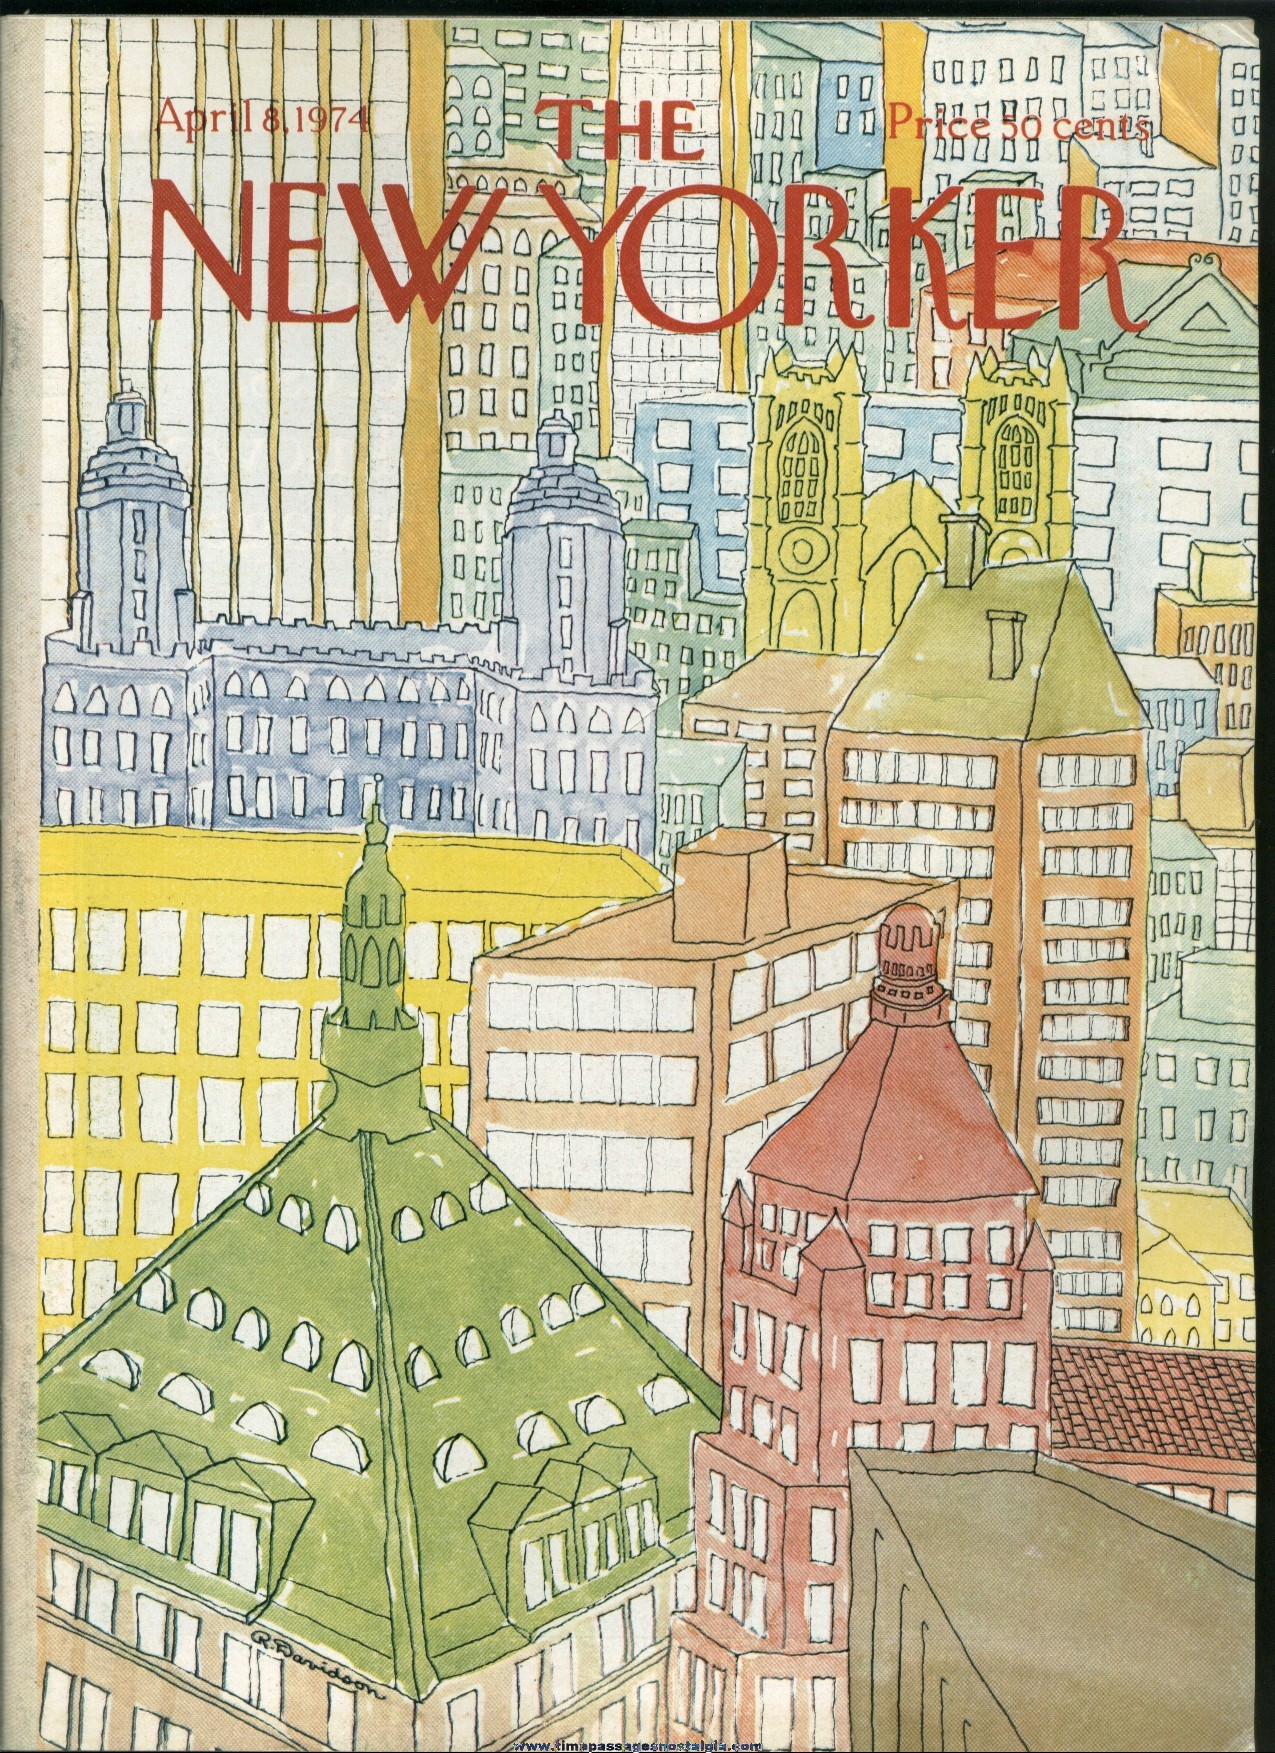 New Yorker Magazine - April 8, 1974 - Cover by Raymond Davidson